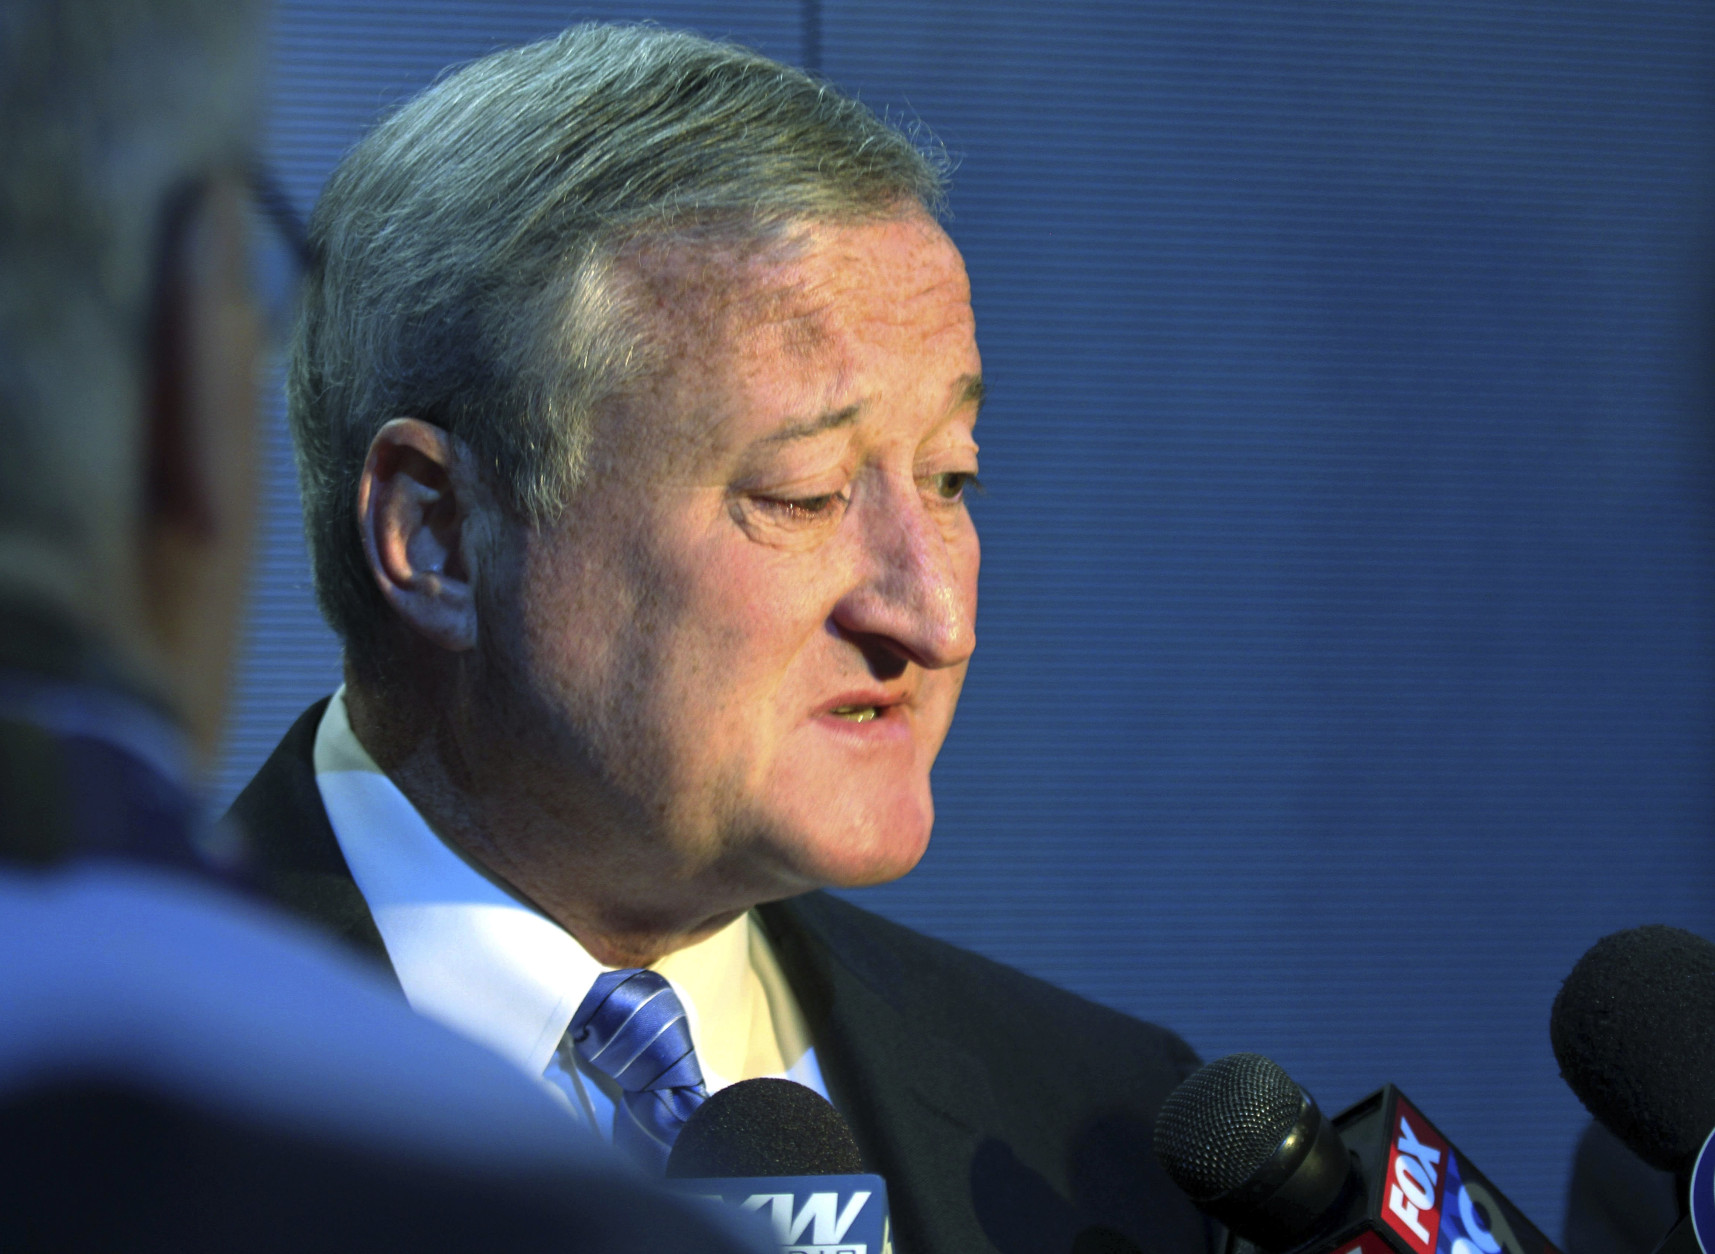 Philadelphia Mayor Jim Kenney speaks after the Democratic National Convention Committee unveiled their stage and podium at the Wells Fargo Center, Friday, July 22, 2016. The convention is scheduled to convene on Monday. (AP Photo/Dake Kang)